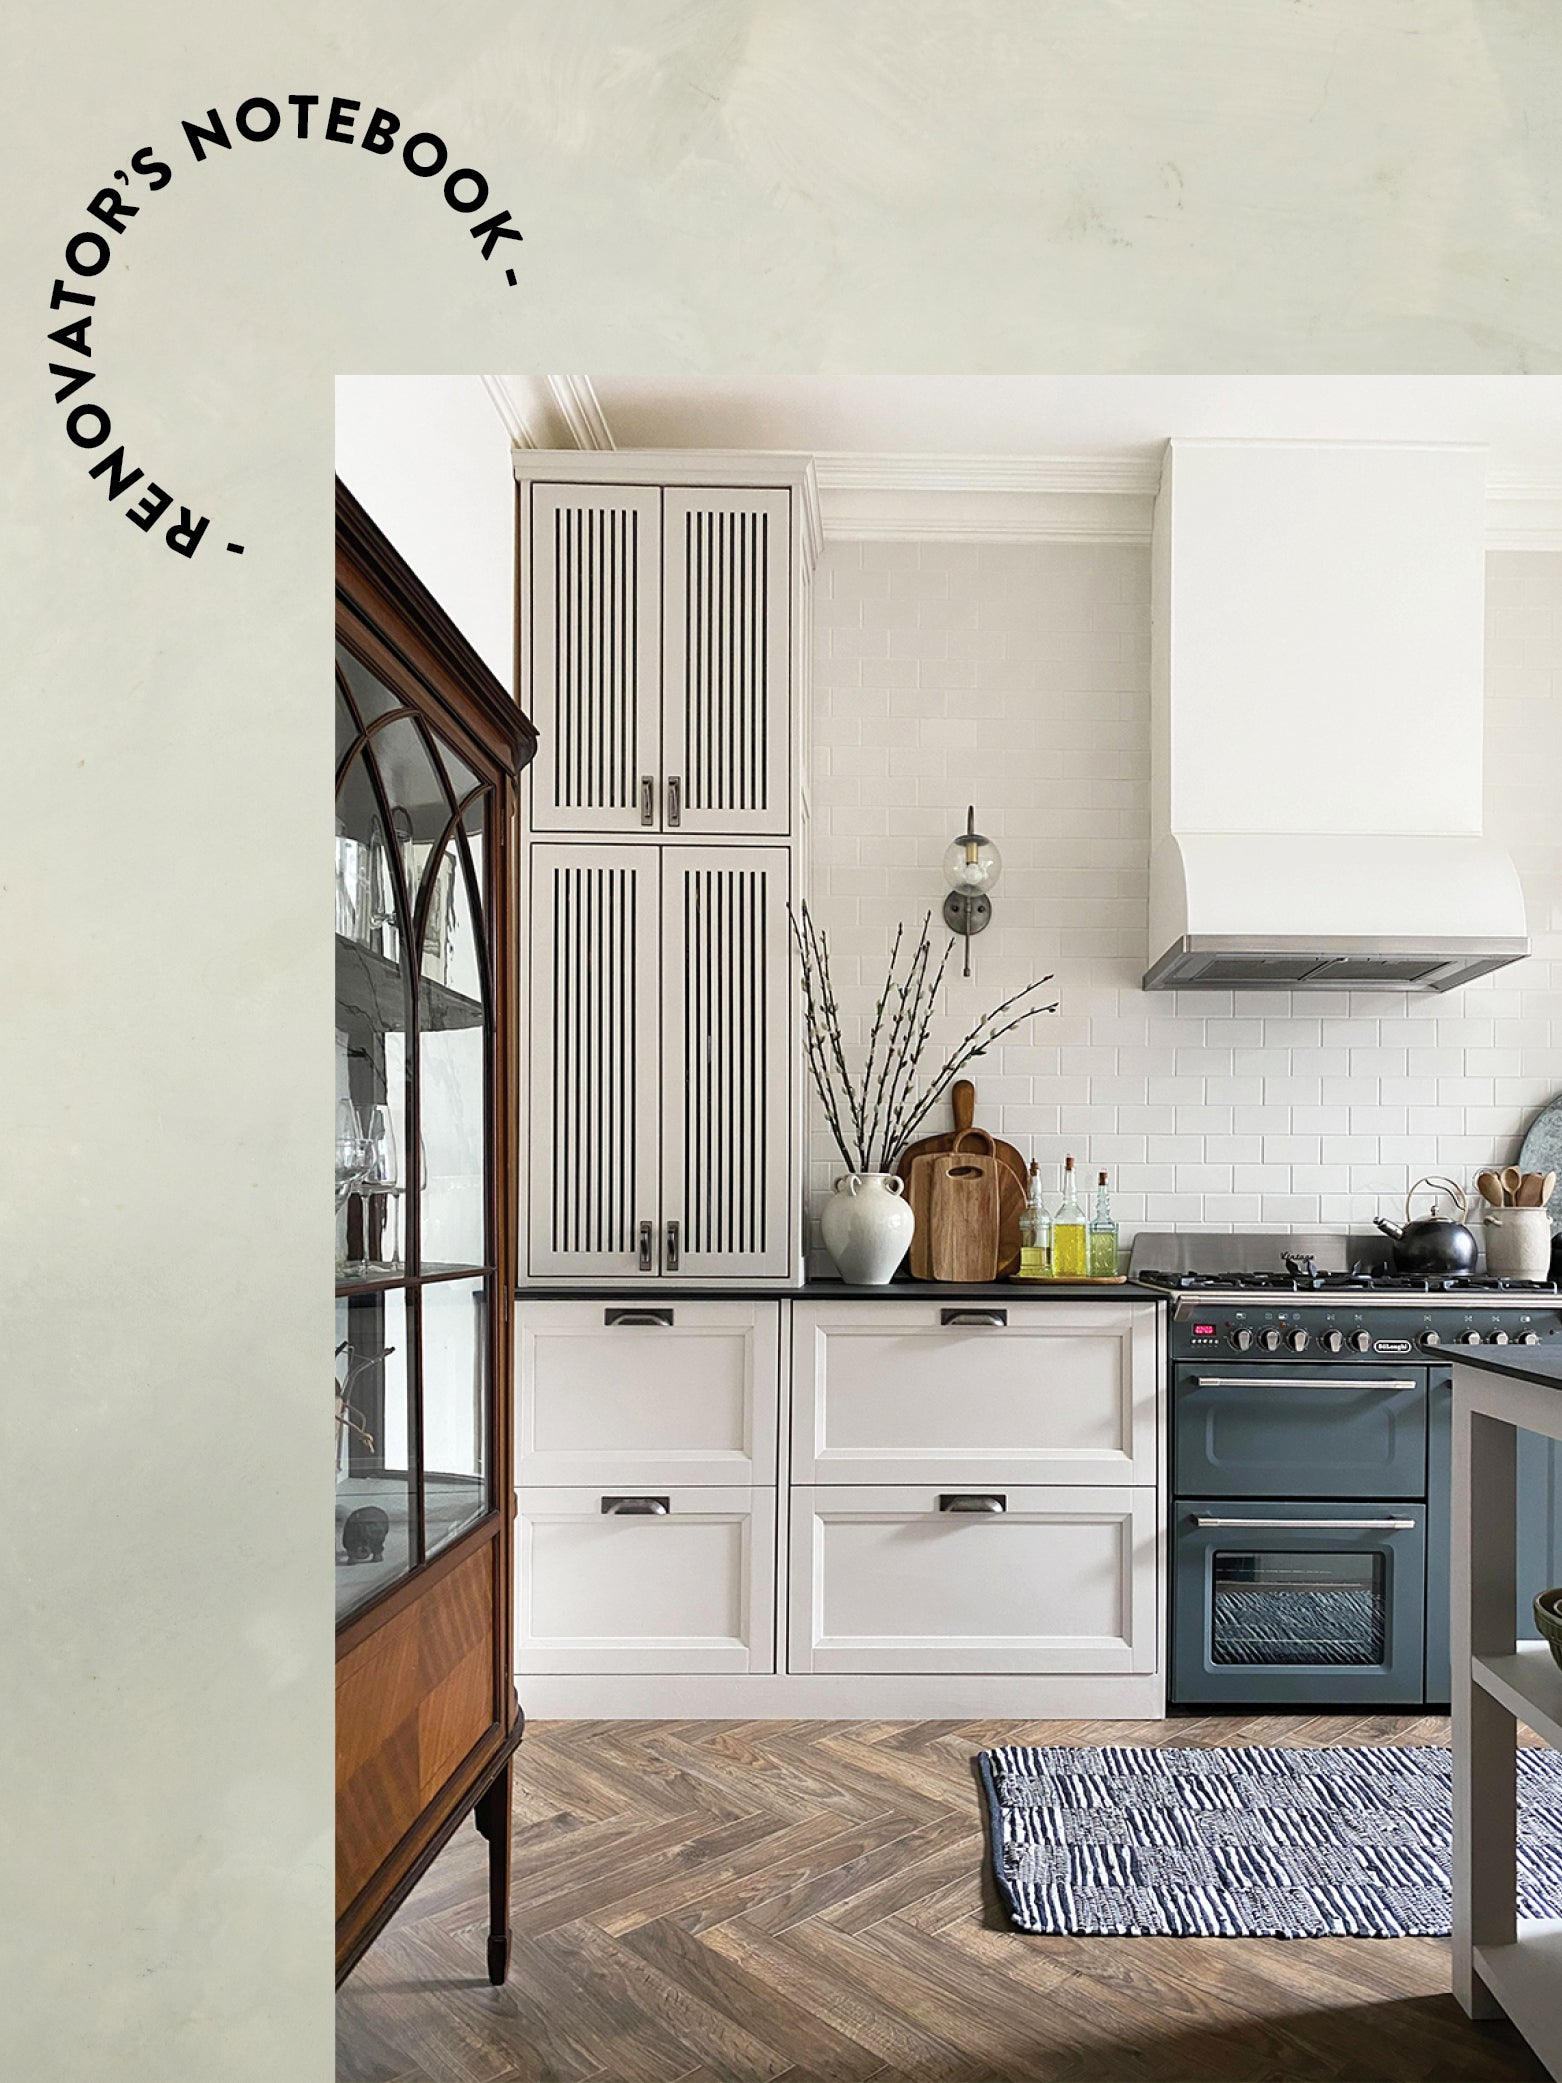 An IKEA Hack Disguises the Not-So-Pretty Stuff in This $11K Kitchen Remodel